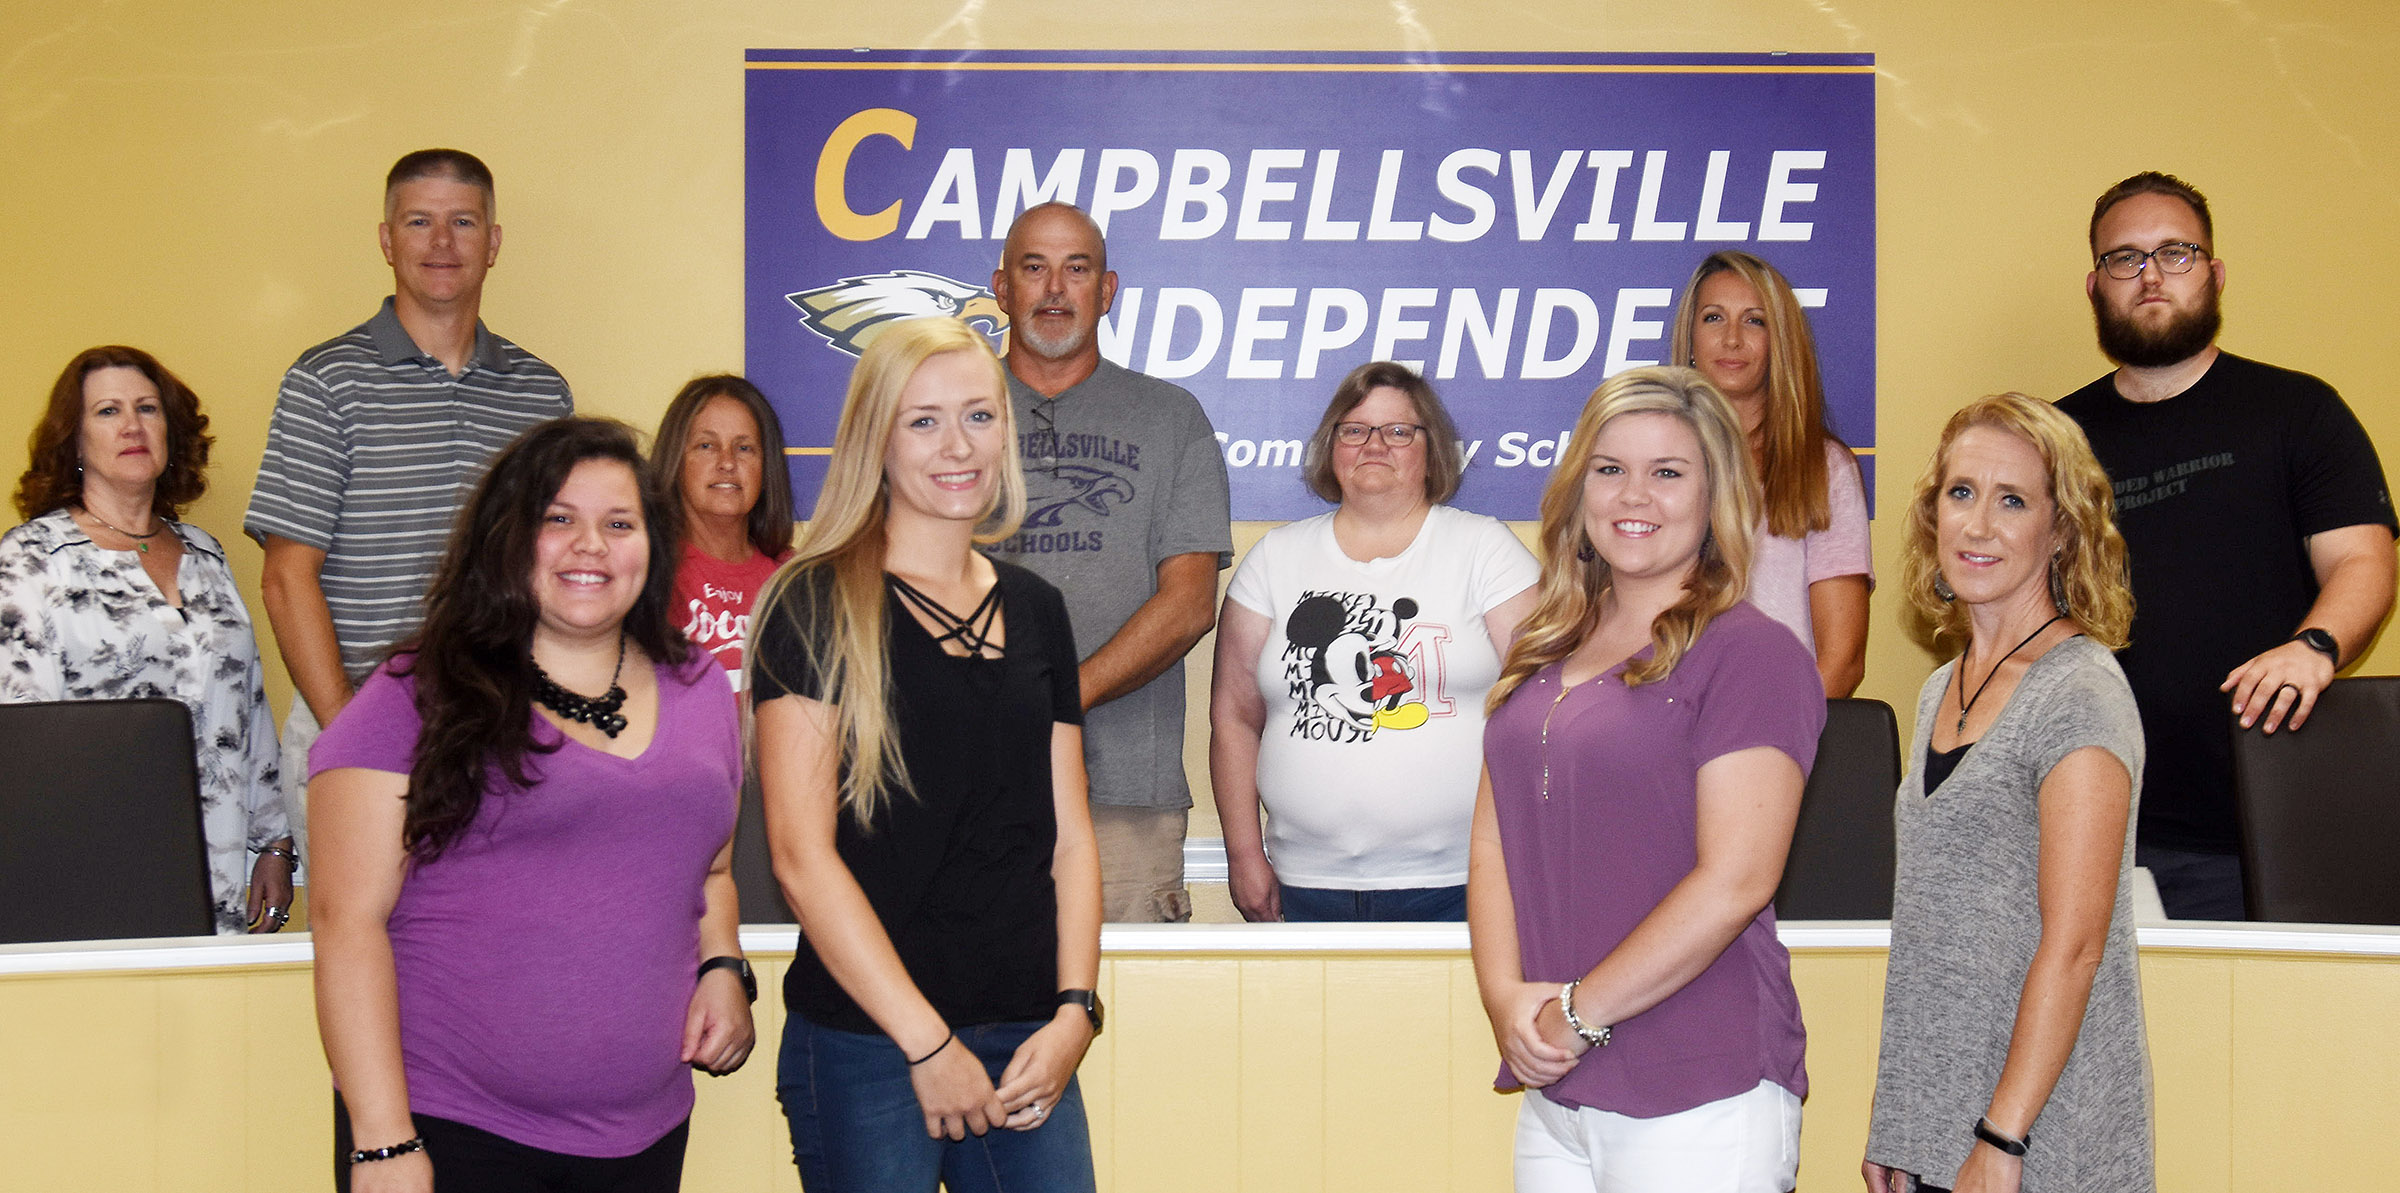 Campbellsville Independent Schools recently added 11 employees to the Eagle family. From left, front, are Carla Delgado, Eagle Academy instructional assistant at Campbellsville Middle School; Tesa Novak, preschool assistant at Campbellsville Elementary School; Alison LaRue, fifth-grade teacher at CES; and Lori Mitchell, exceptional child education instructional assistant at CES. Back, preschool assistant at CES; Doug Holmes, Wings Express director at CES; Vicki Brock, cafeteria worker at Campbellsville High School; Dean Faulkner, maintenance worker; Teresa Thompson, bus monitor; Misty Clark Matney, adult education instructor; and Jonathan McCoy, custodial worker.